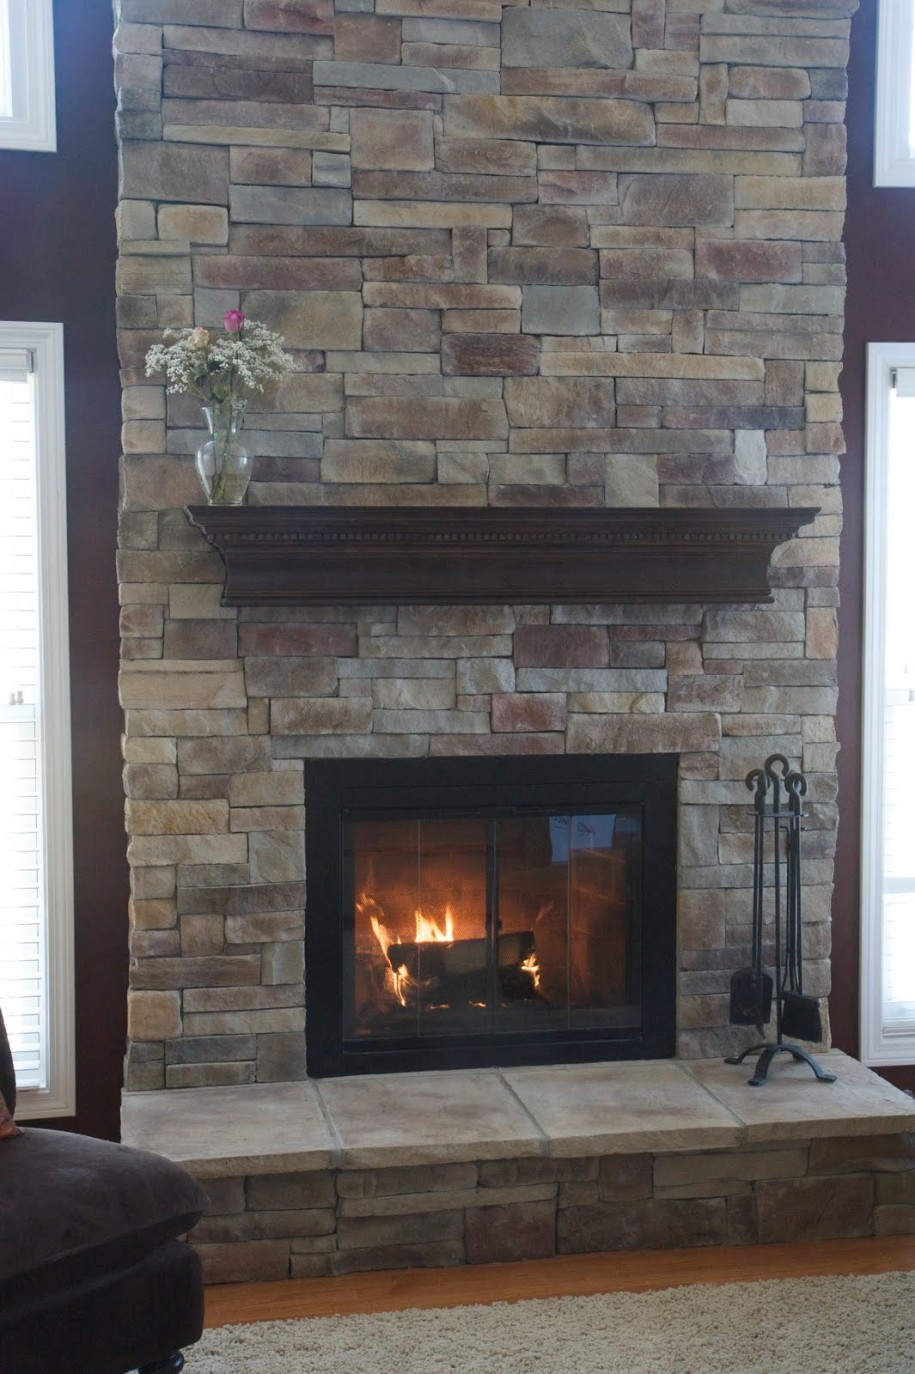 Stone Brick Fireplace with Mantel 915 x 1374